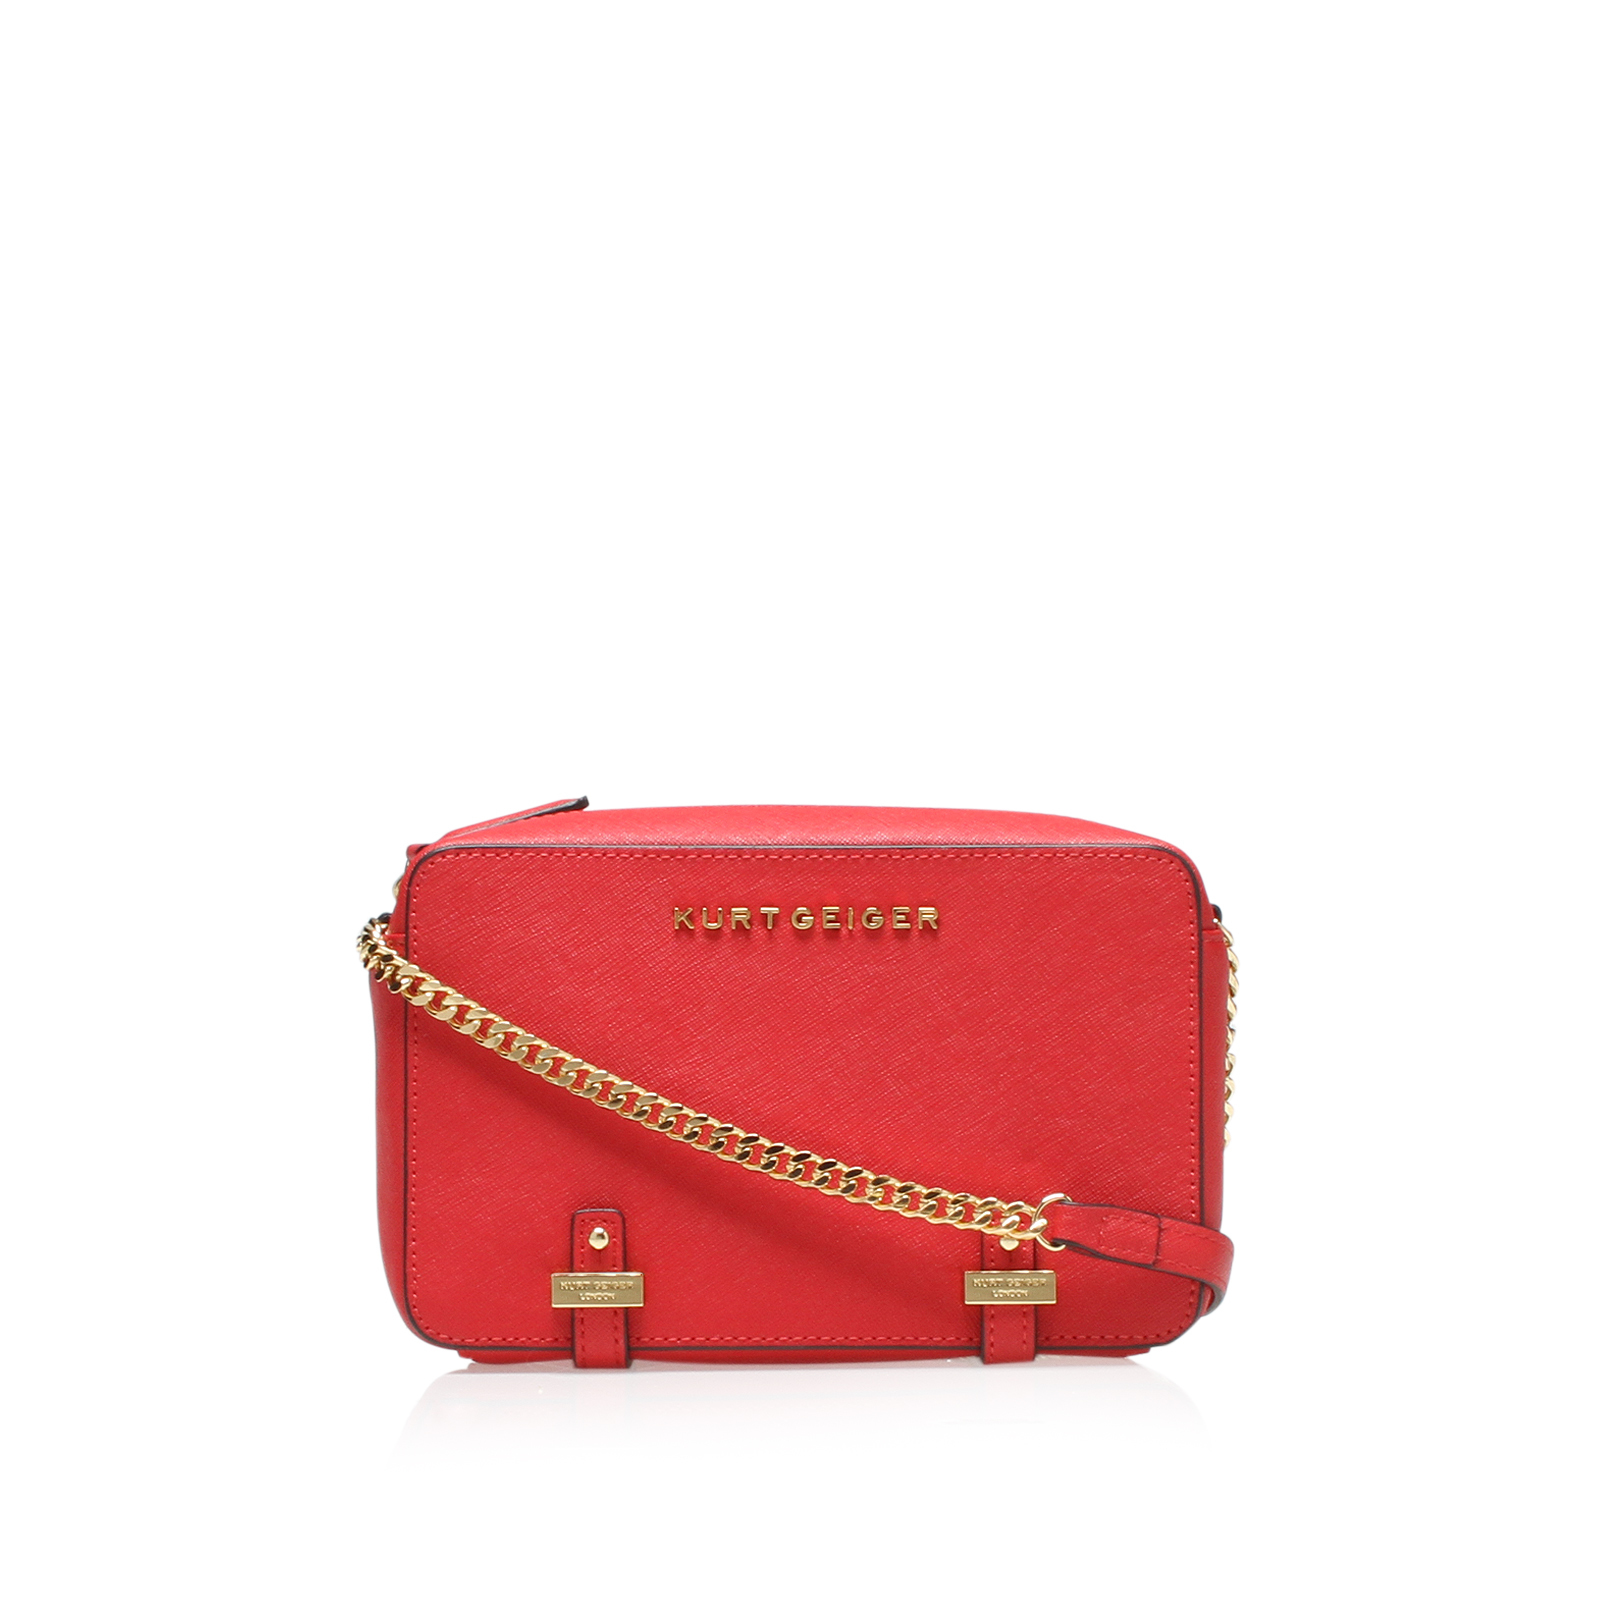 SAFFIANO ABBEY CROSS BODY